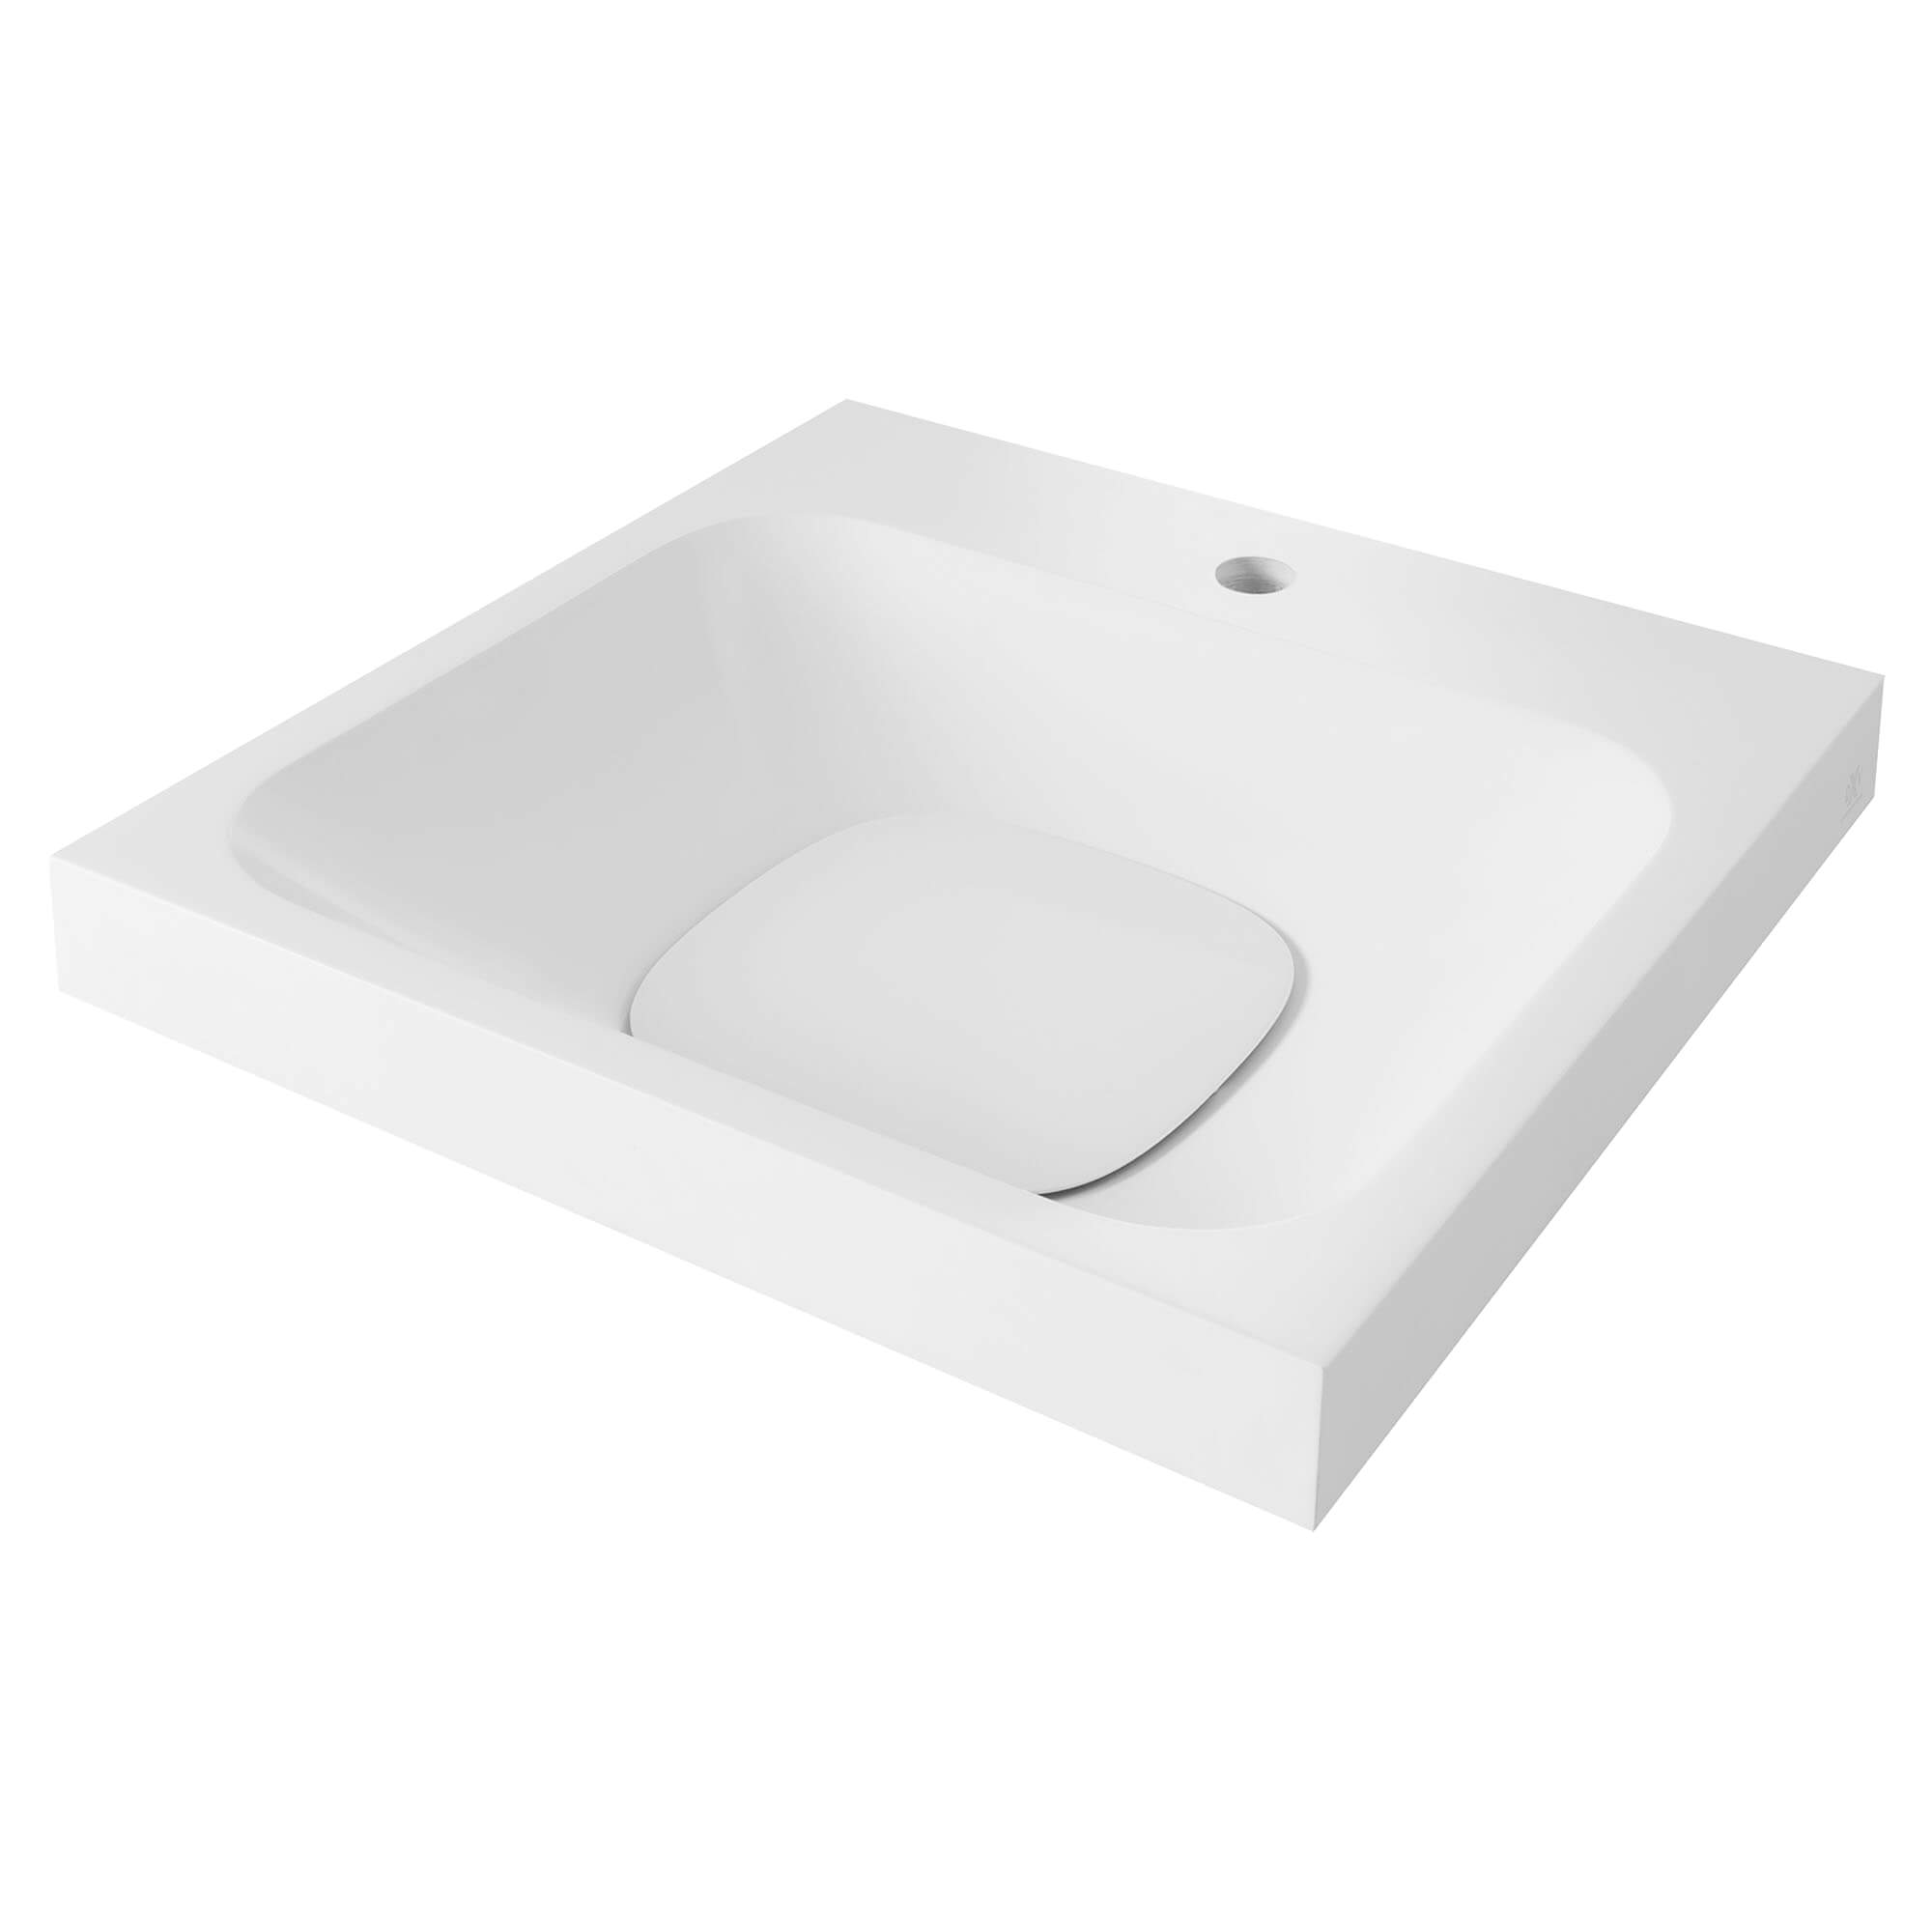 DXV Modulus 21-inch Single-Hole Bathroom Sink